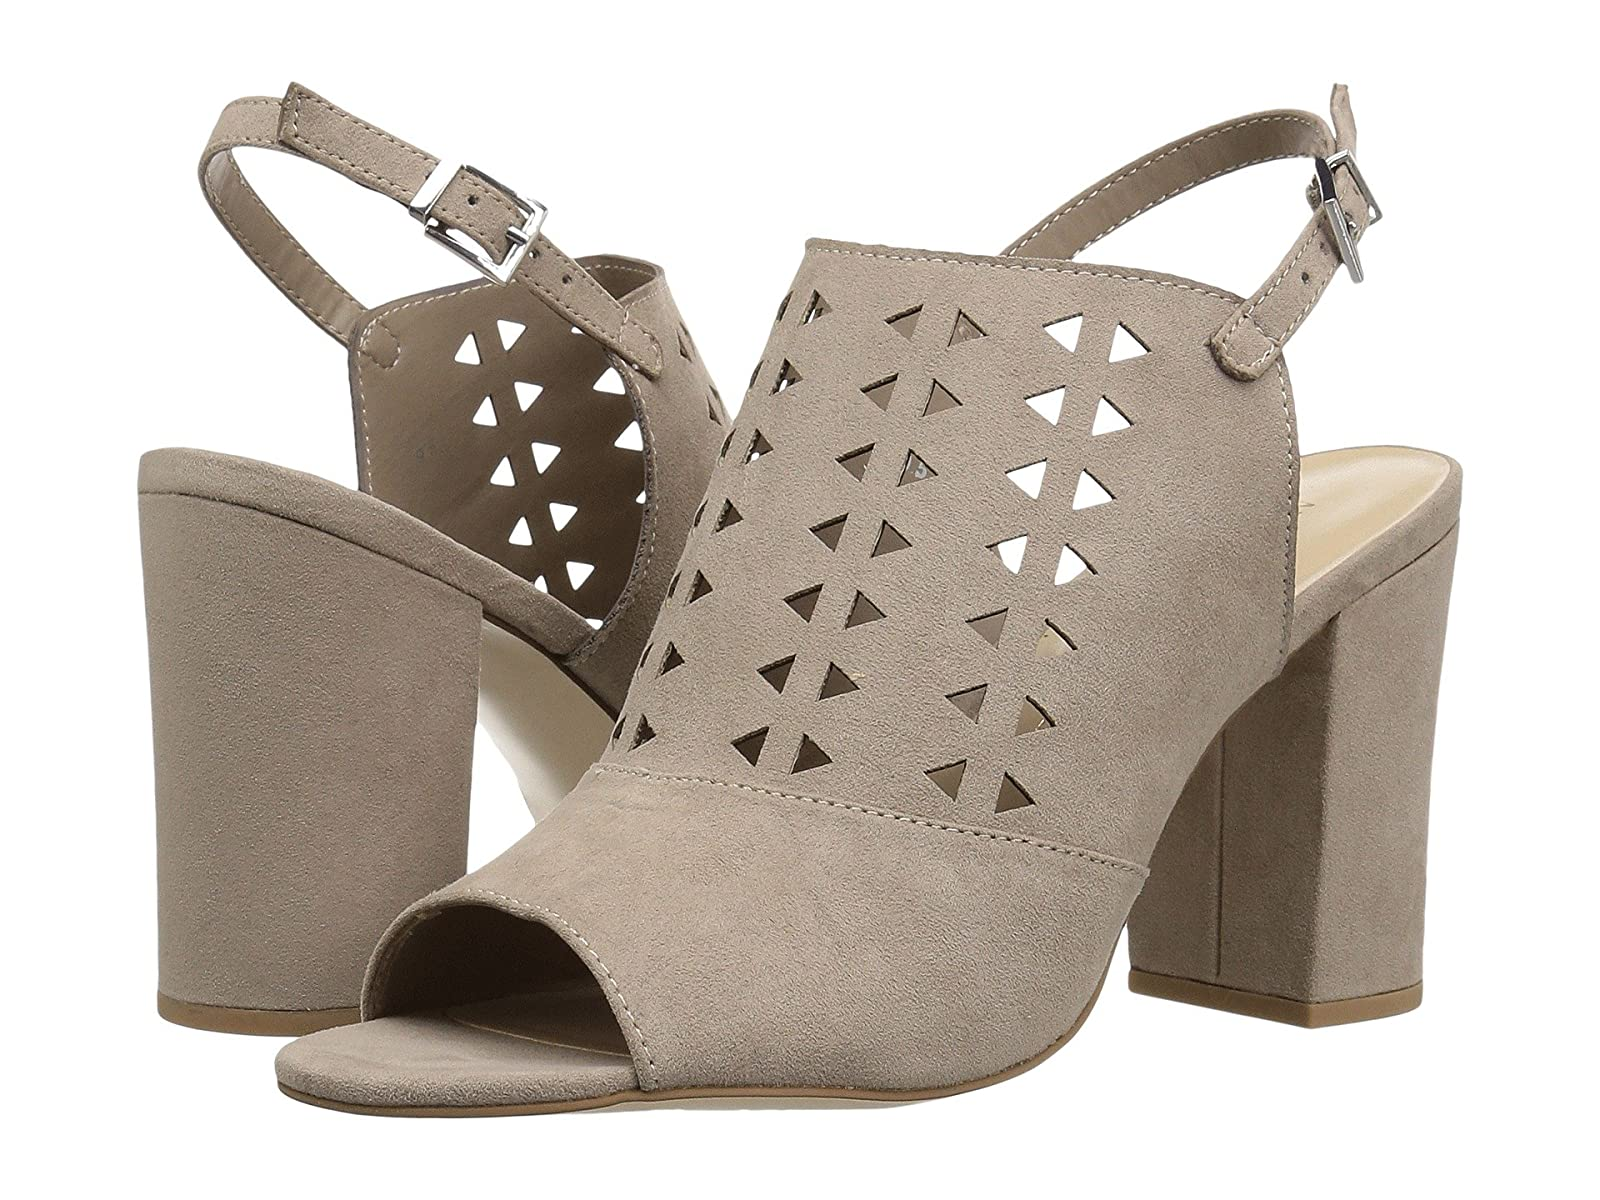 Athena Alexander NadiahCheap and distinctive eye-catching shoes